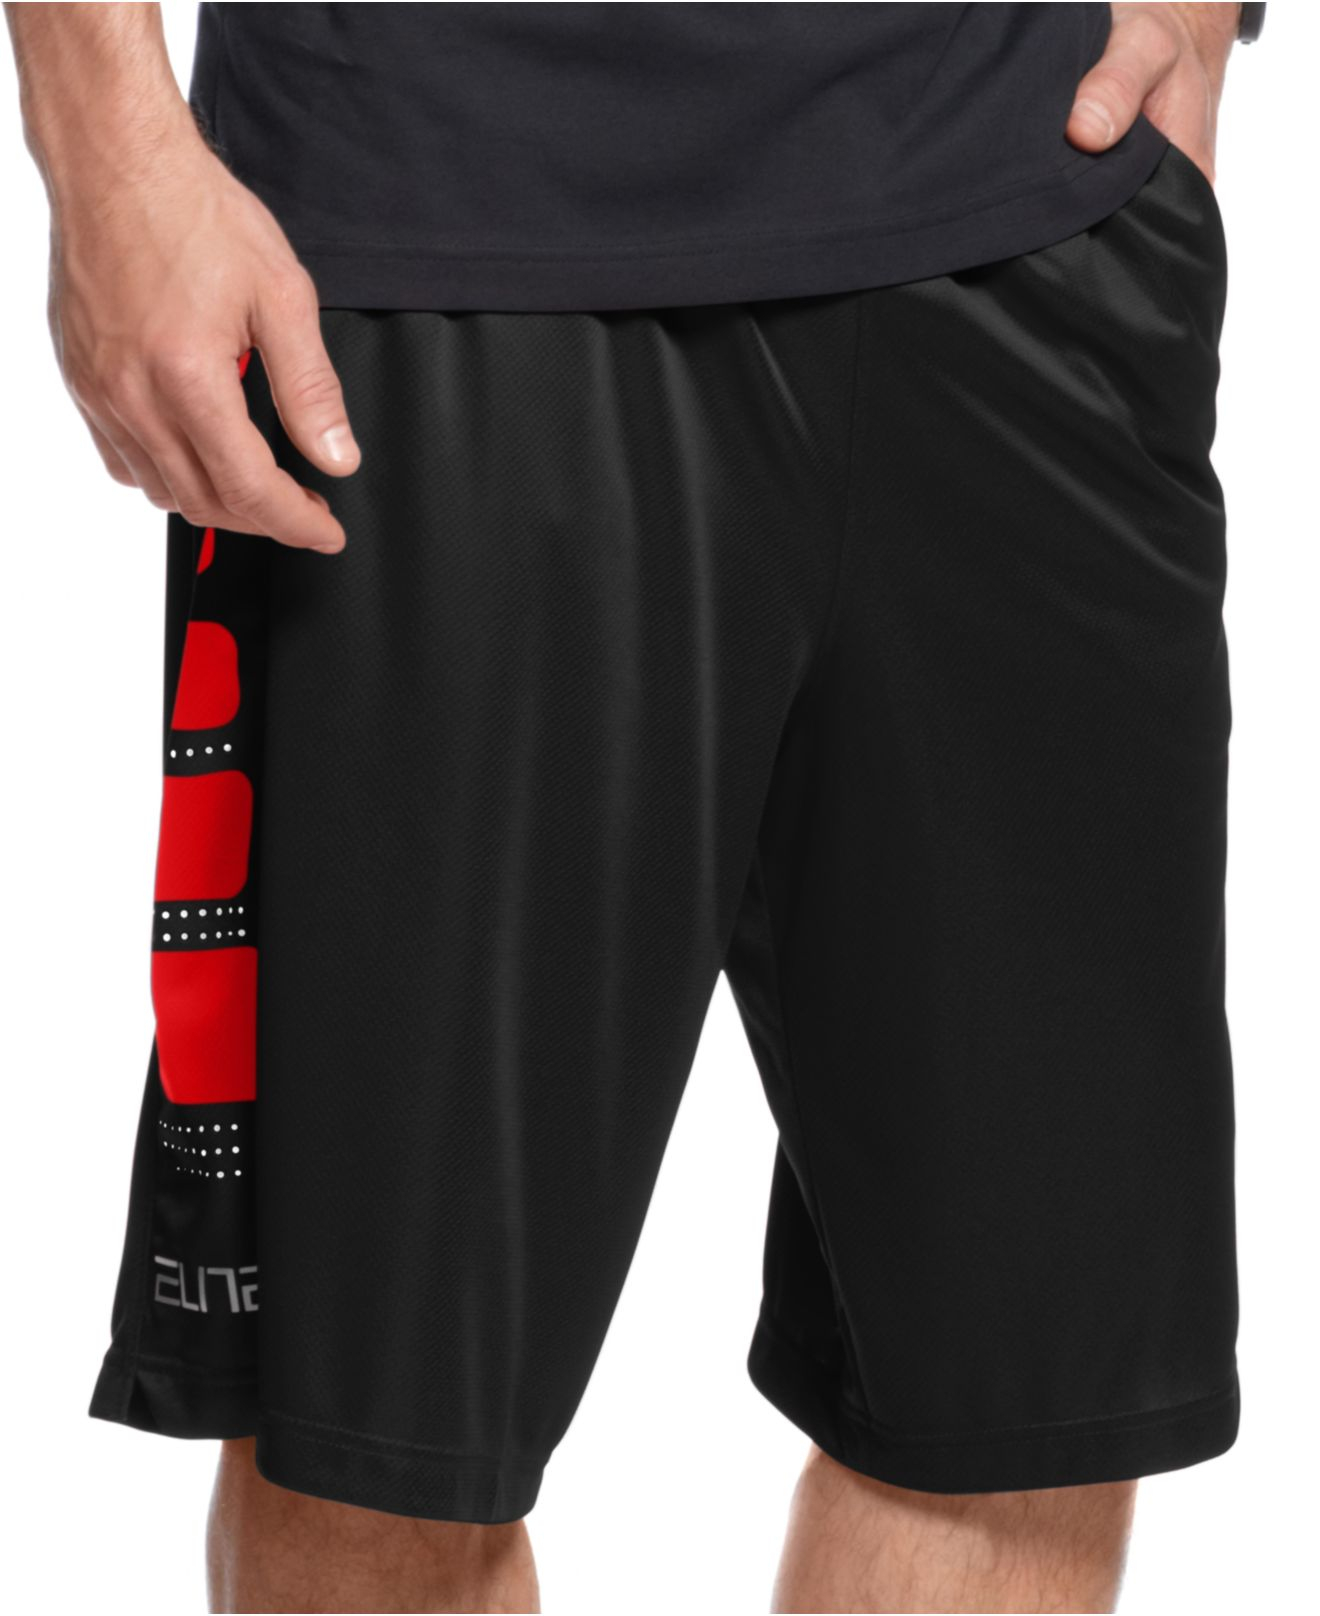 Nike elite shorts for men